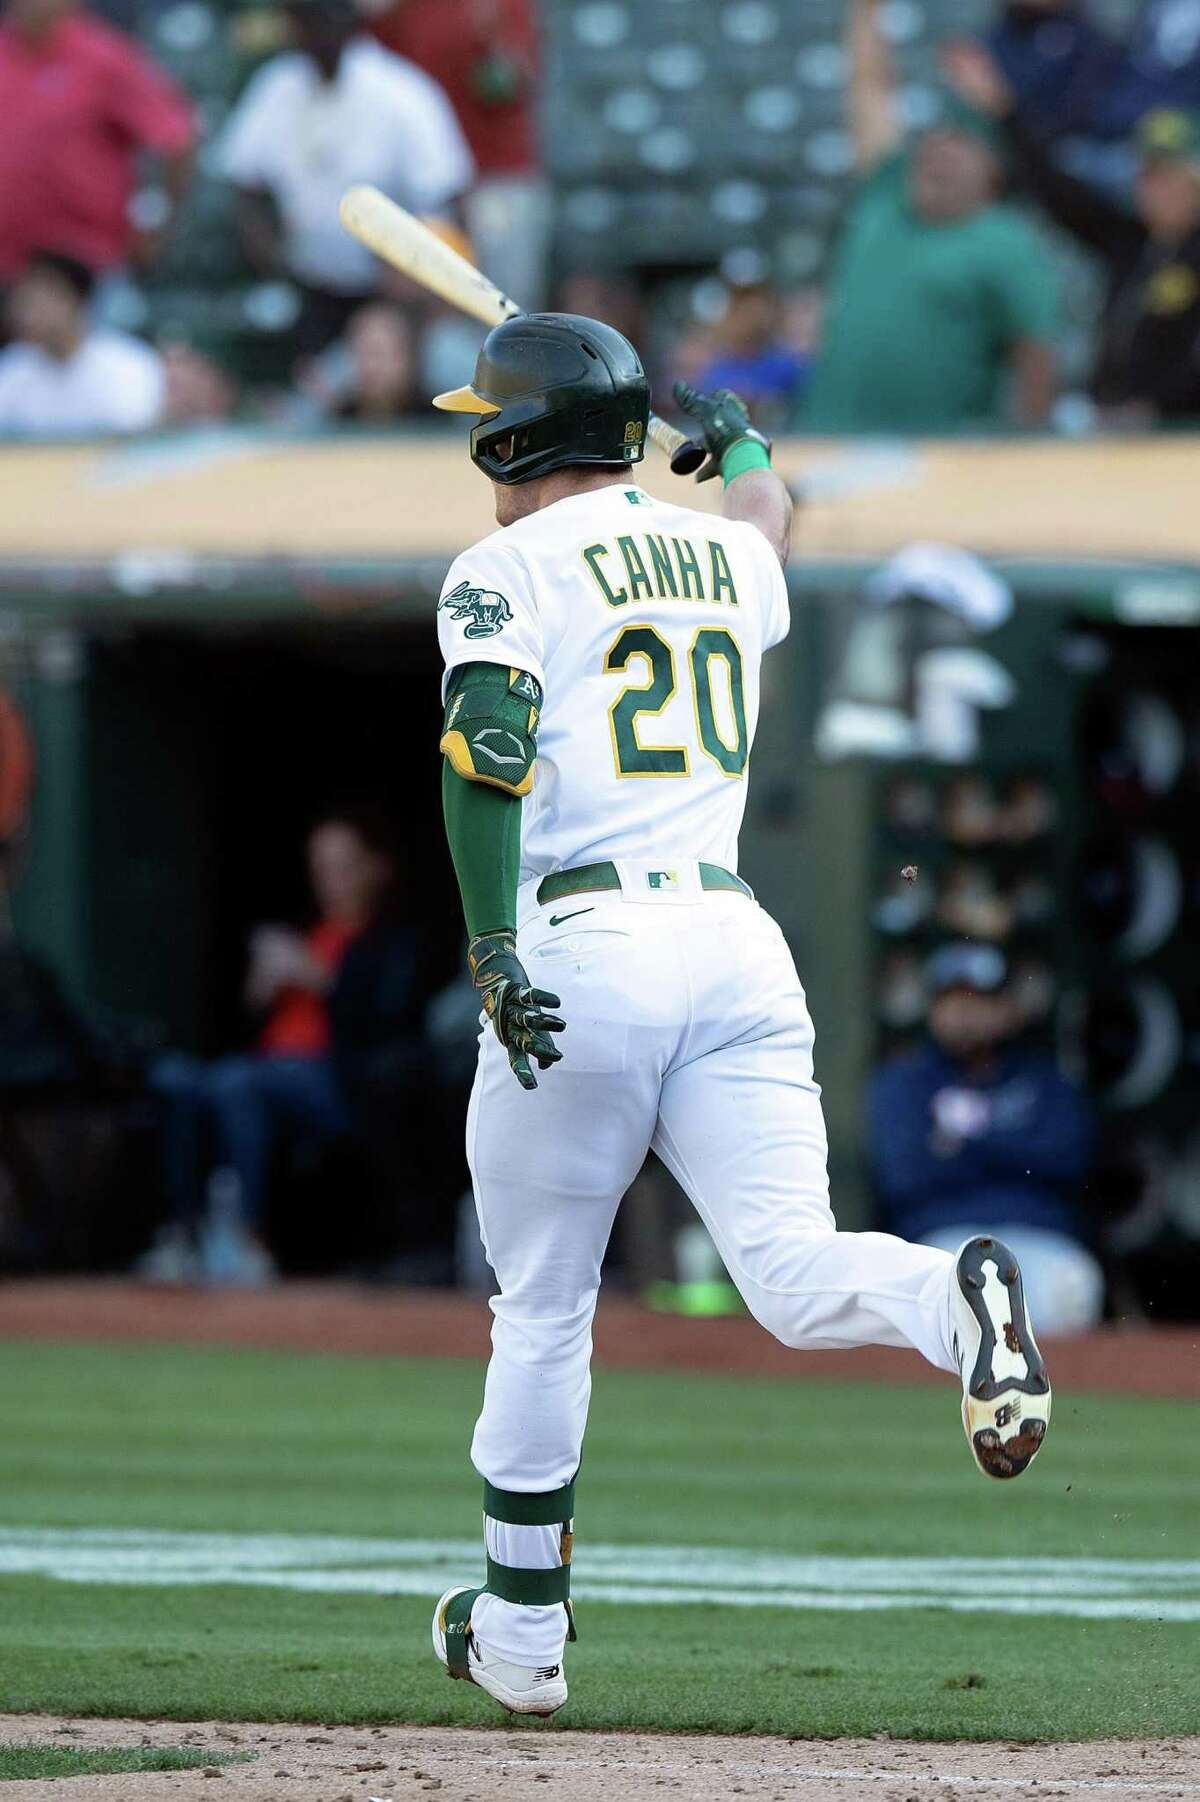 OAKLAND, CALIFORNIA - SEPTEMBER 26: Mark Canha #20 of the Oakland Athletics flips his bat after hitting a walk-off single against the Houston Astros in the ninth inning at RingCentral Coliseum on September 26, 2021 in Oakland, California. The Athletics won 4-3. (Photo by Jason O. Watson/Getty Images)